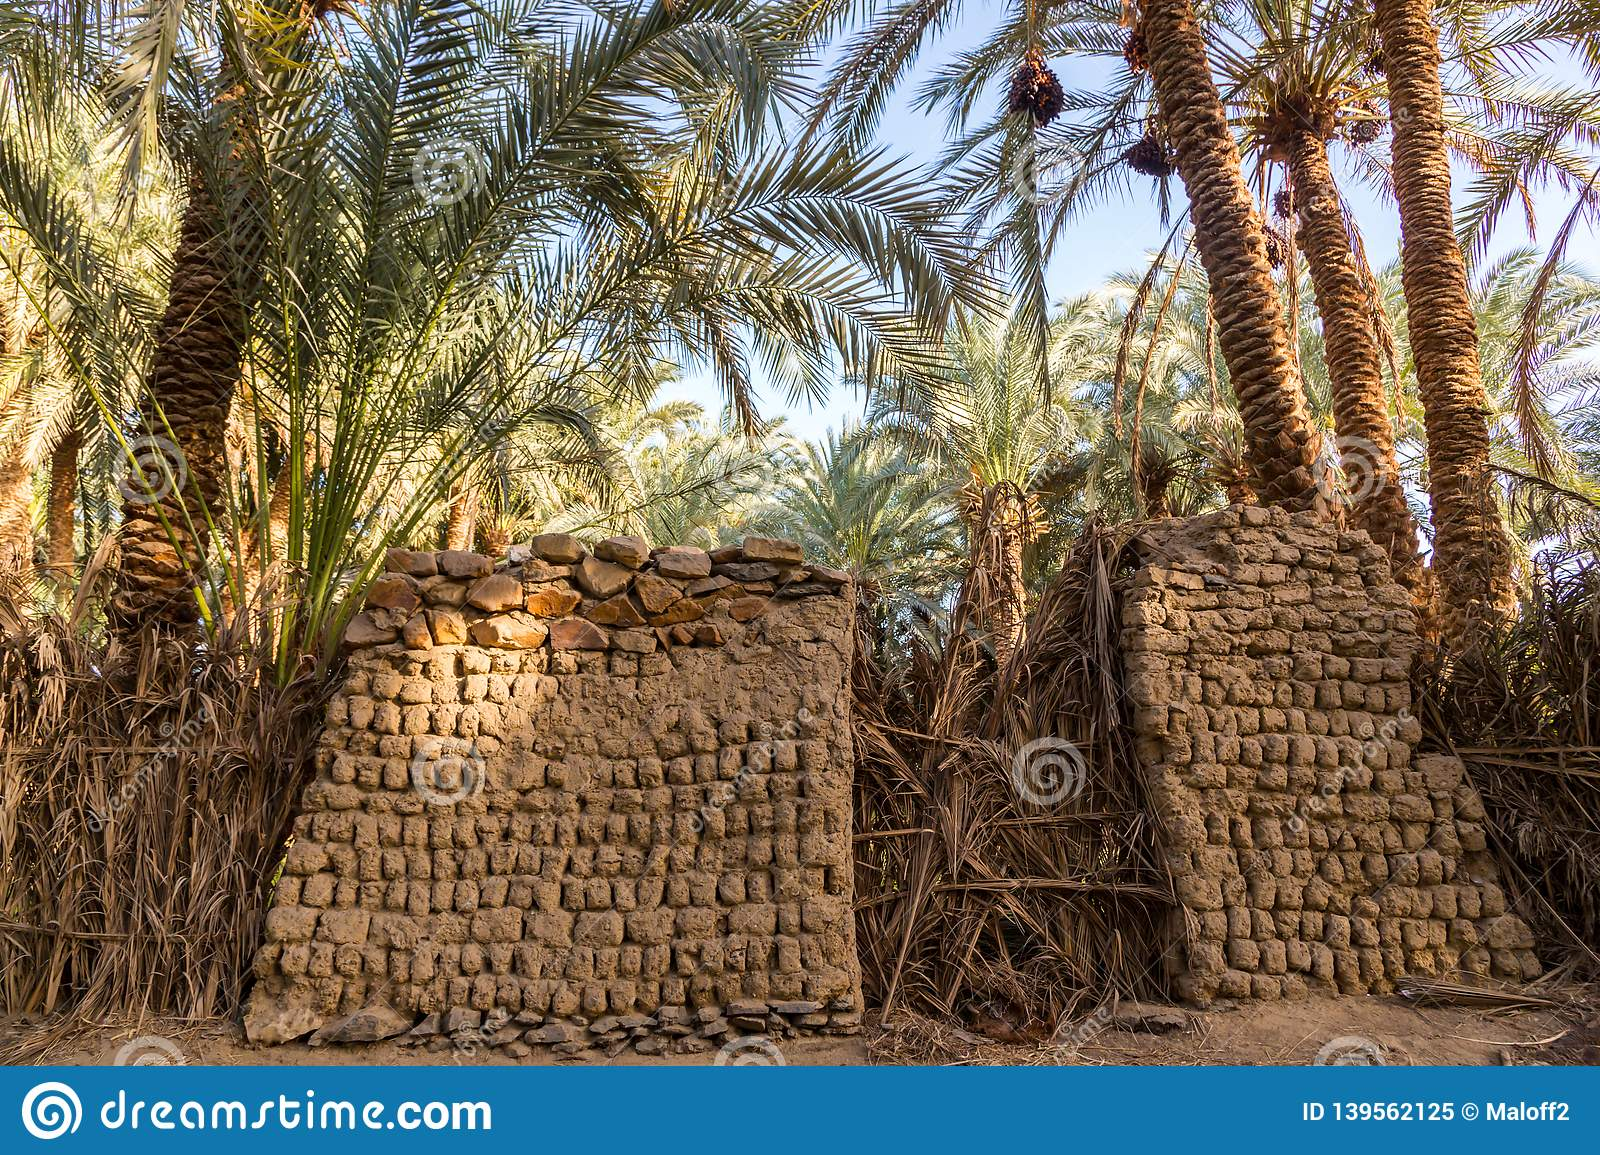 Traditional building of clay, thatched walls and adobe bricks, gardens of date palms. Bahariya, Western Desert, Sahara, Egypt.